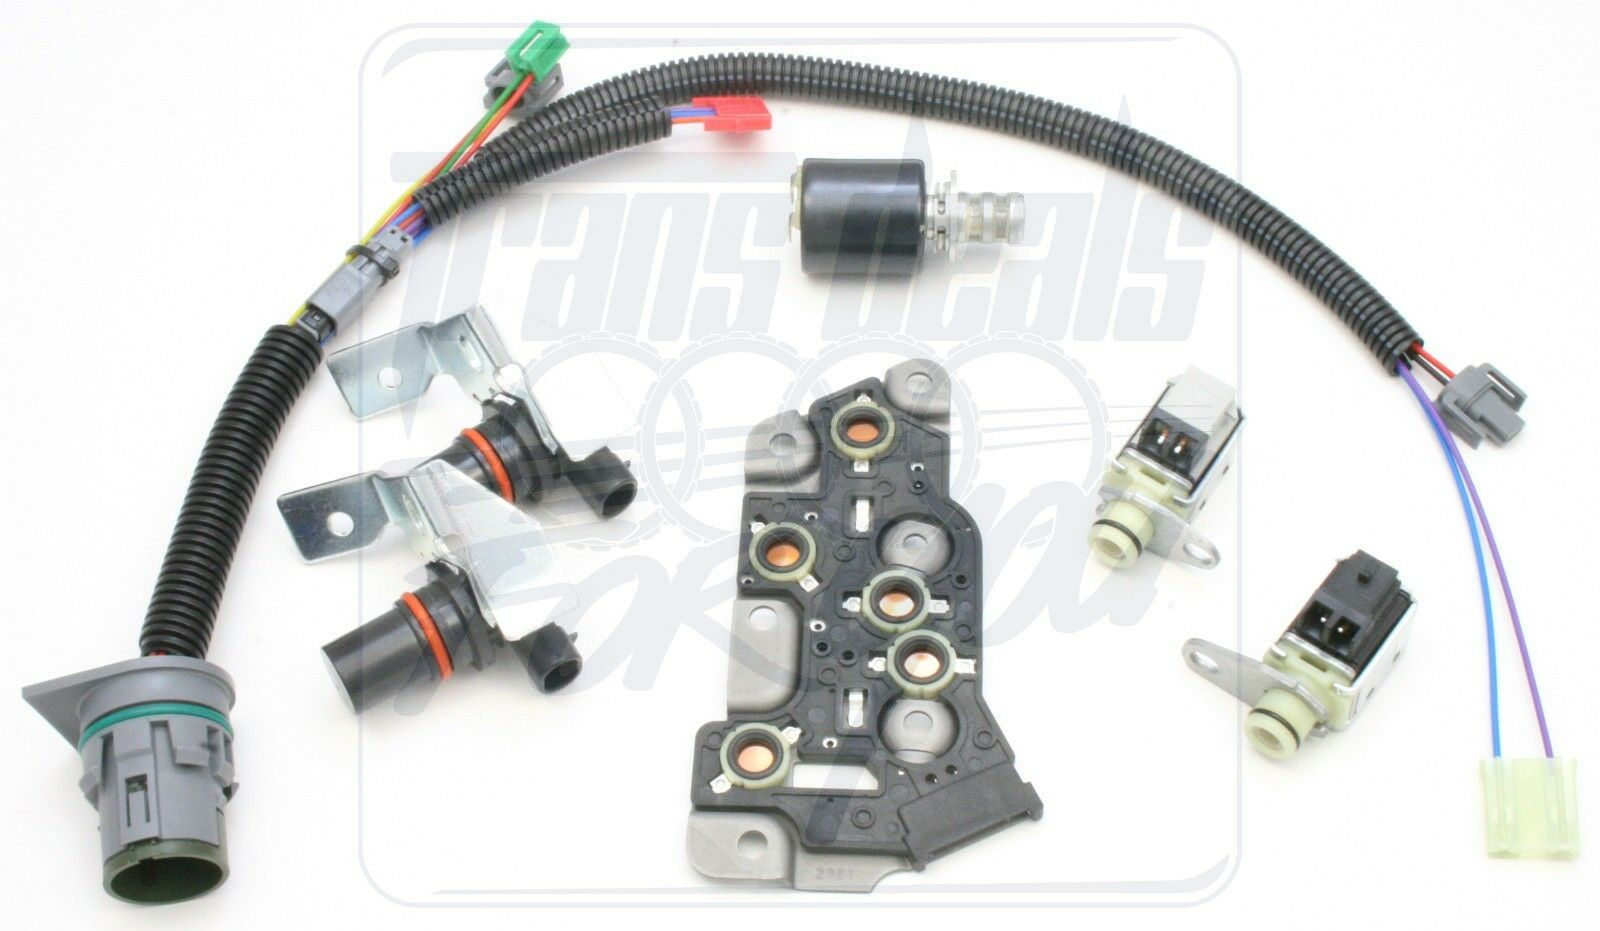 chevy 4l80e gm solenoid electical kit epc shift manifold